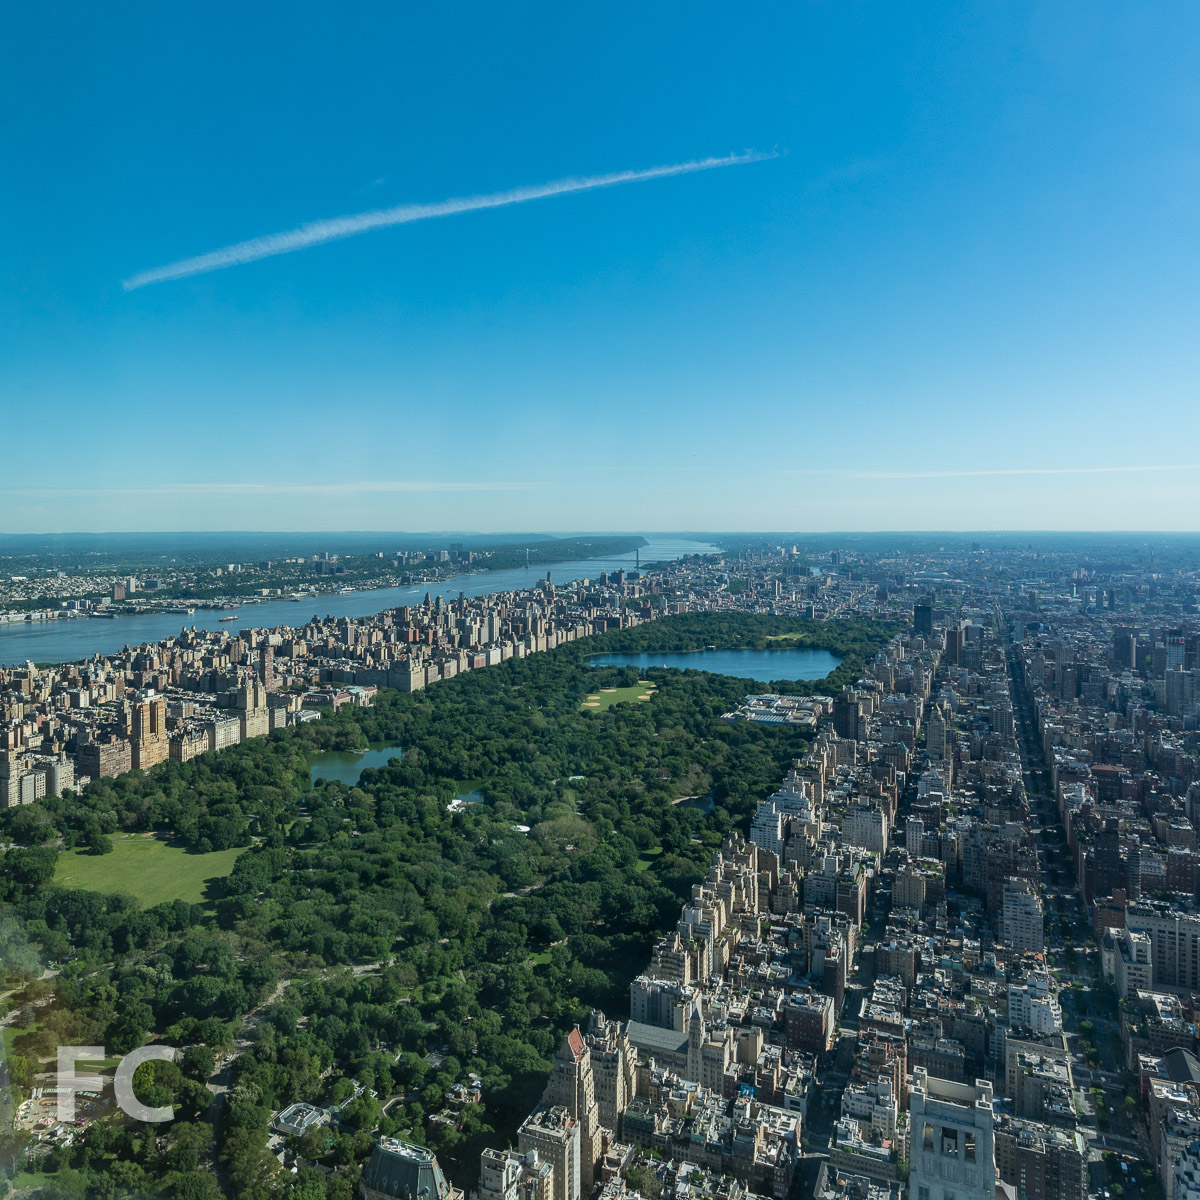 North view towards Central Park and the Upper East and West Side.